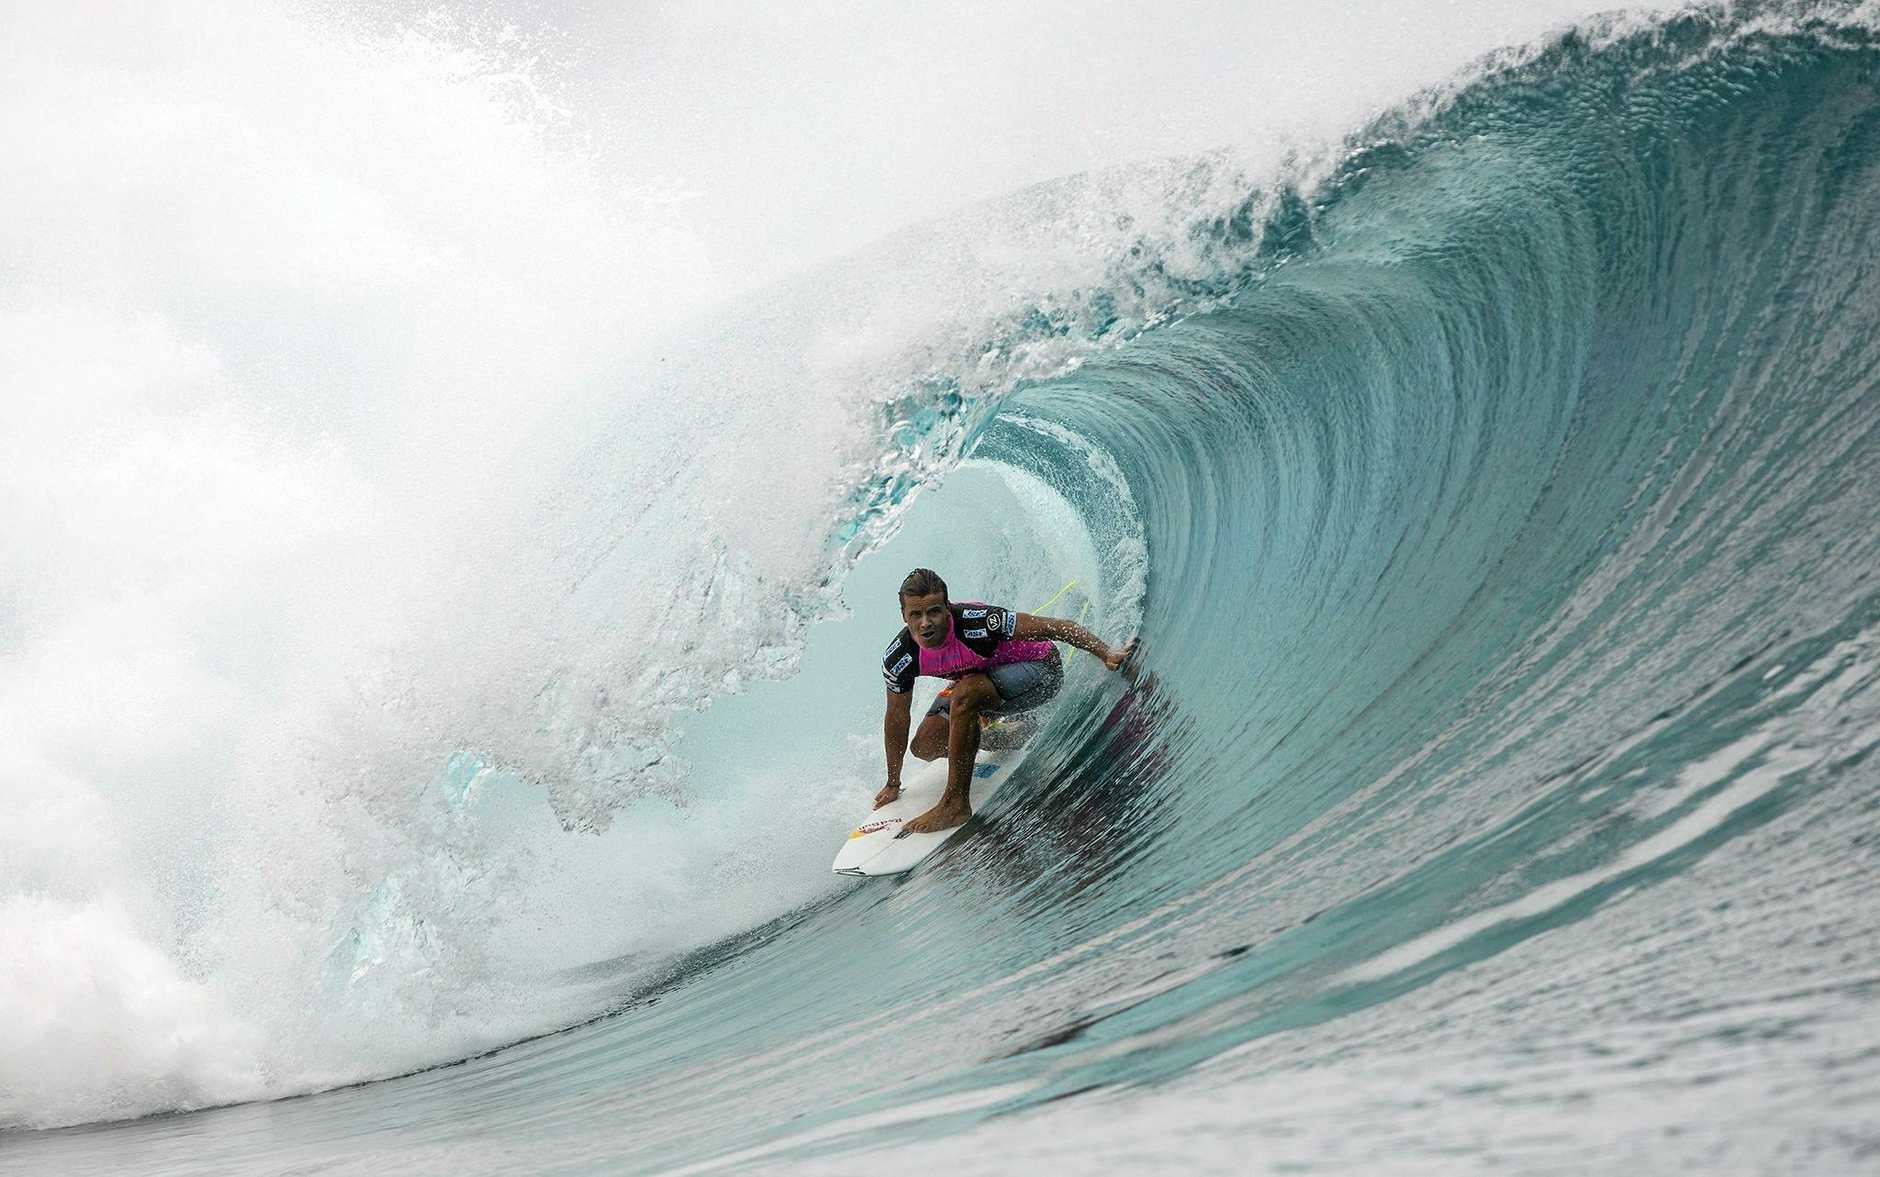 AT CHOPES: Julian Wilson in action during the Billabong Pro in Tahiti in 2013.